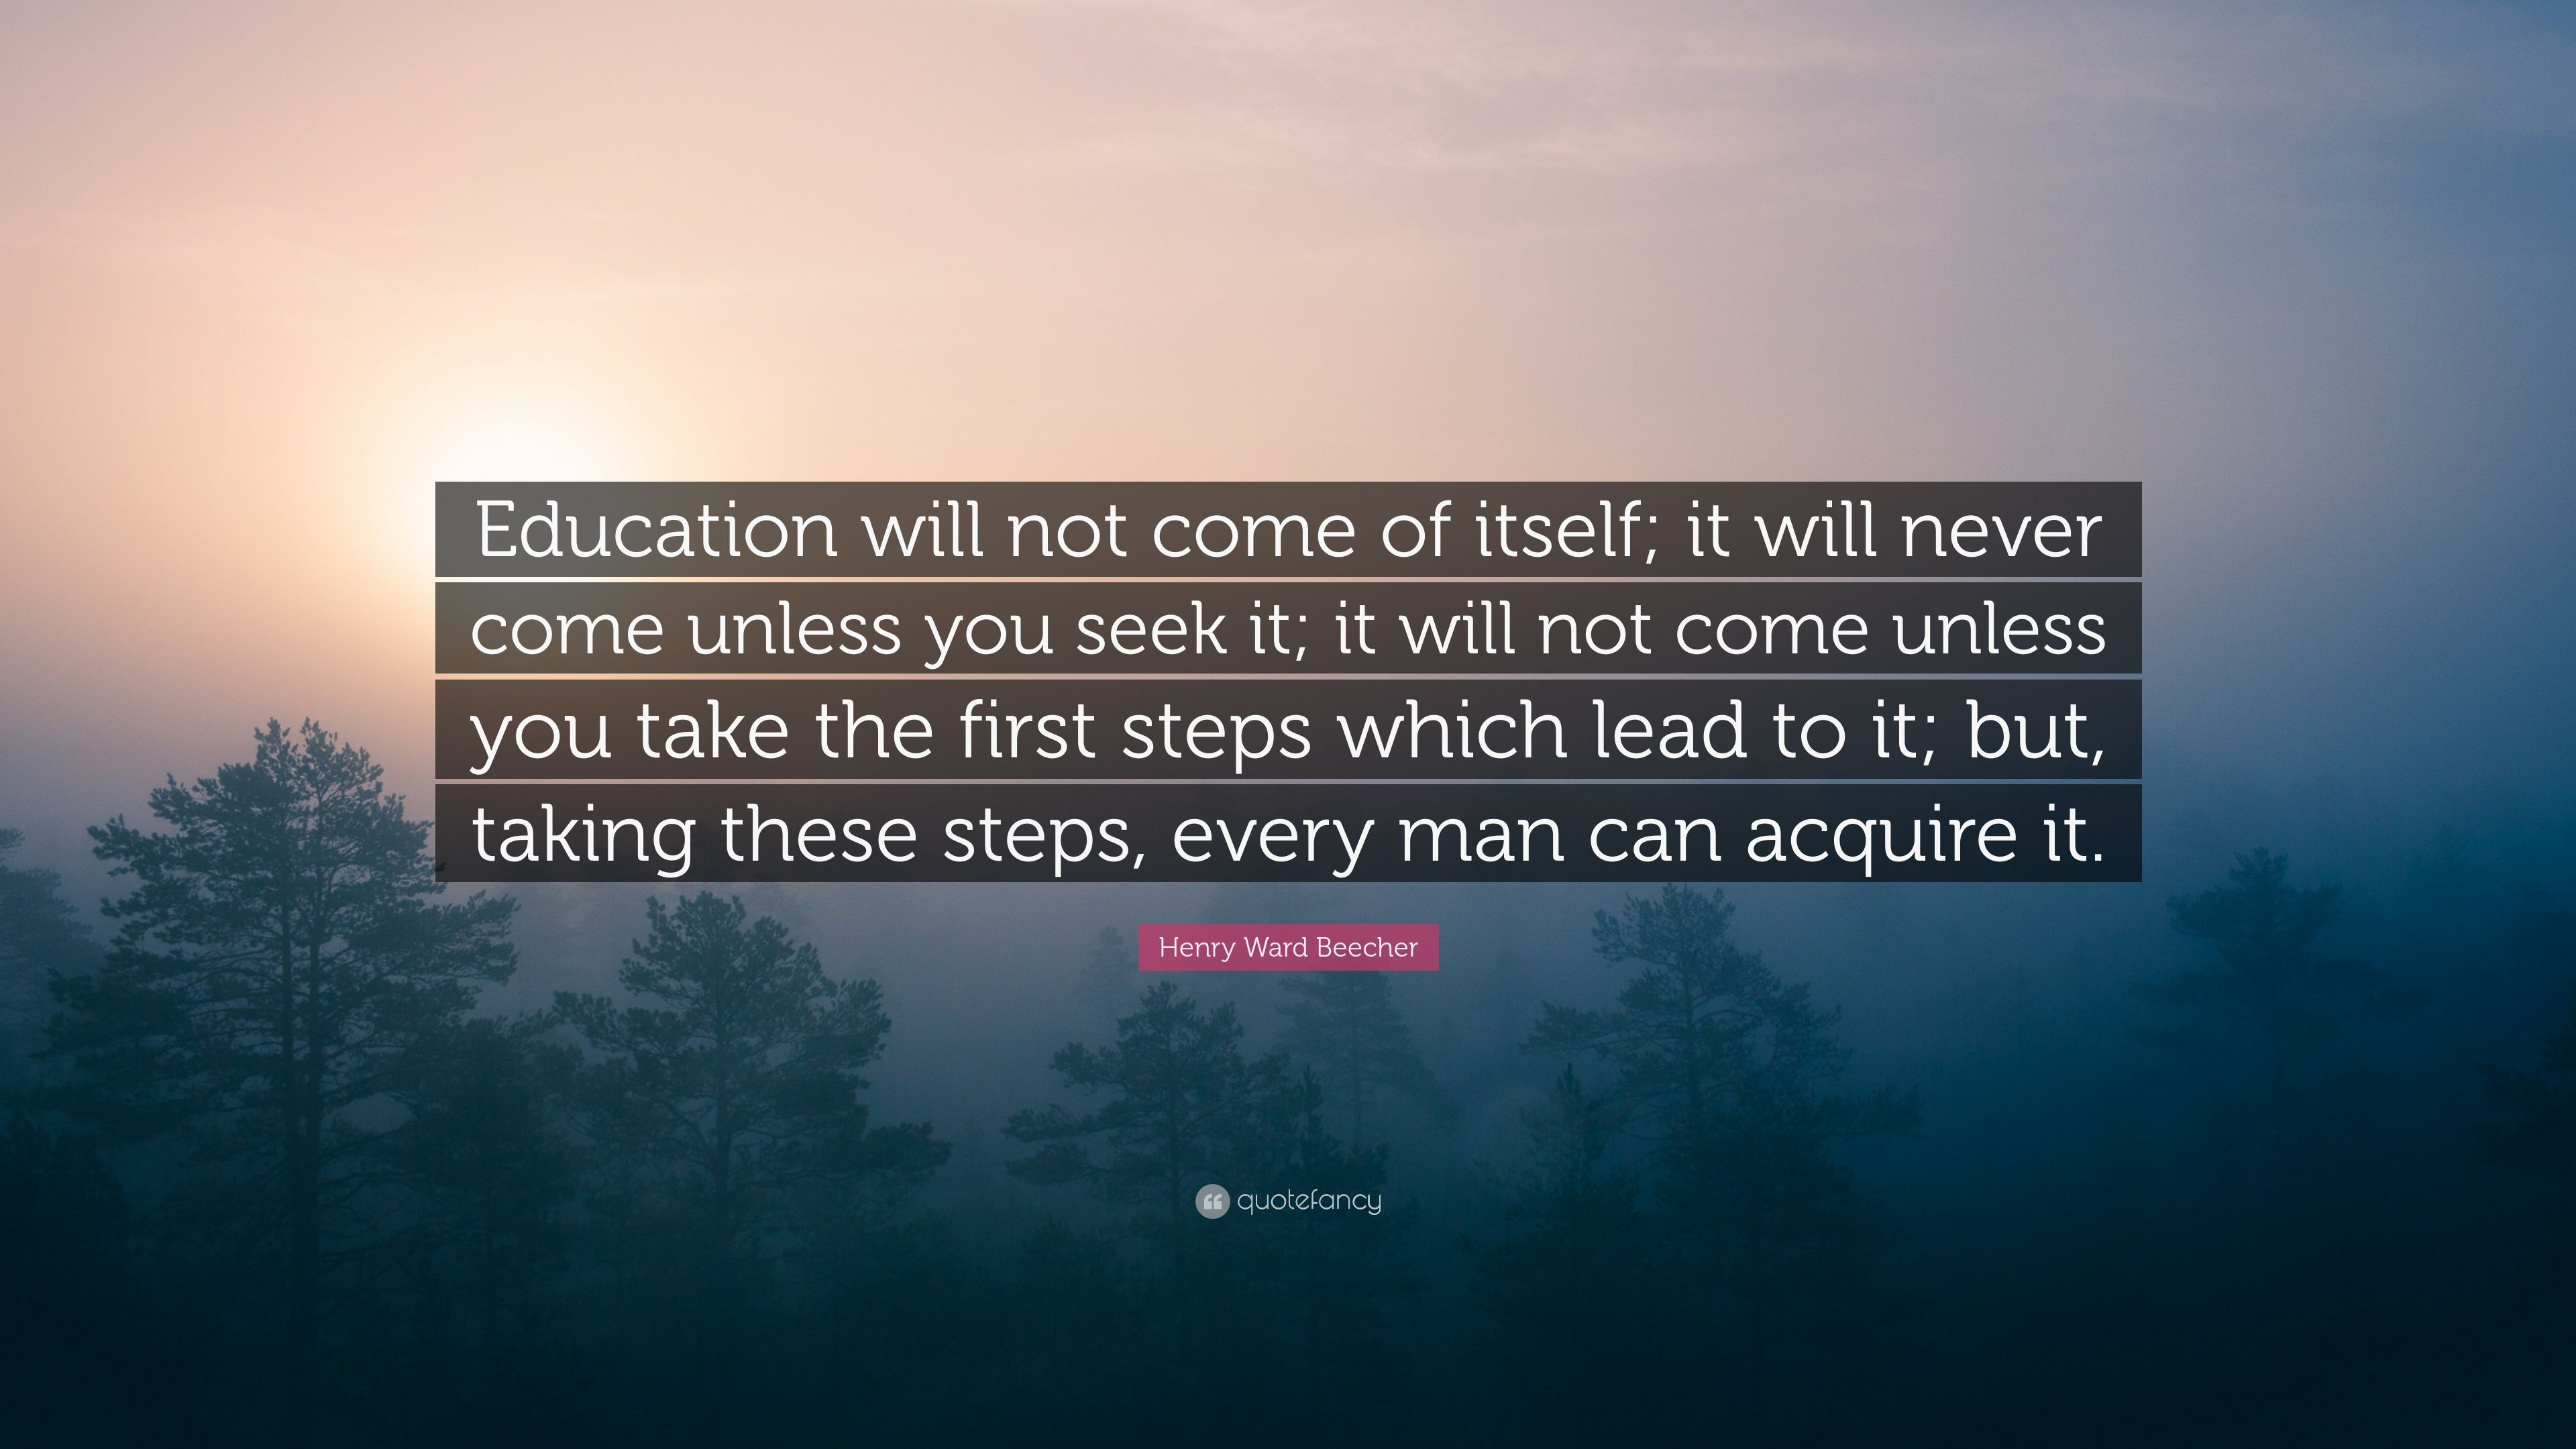 Come and acquire it